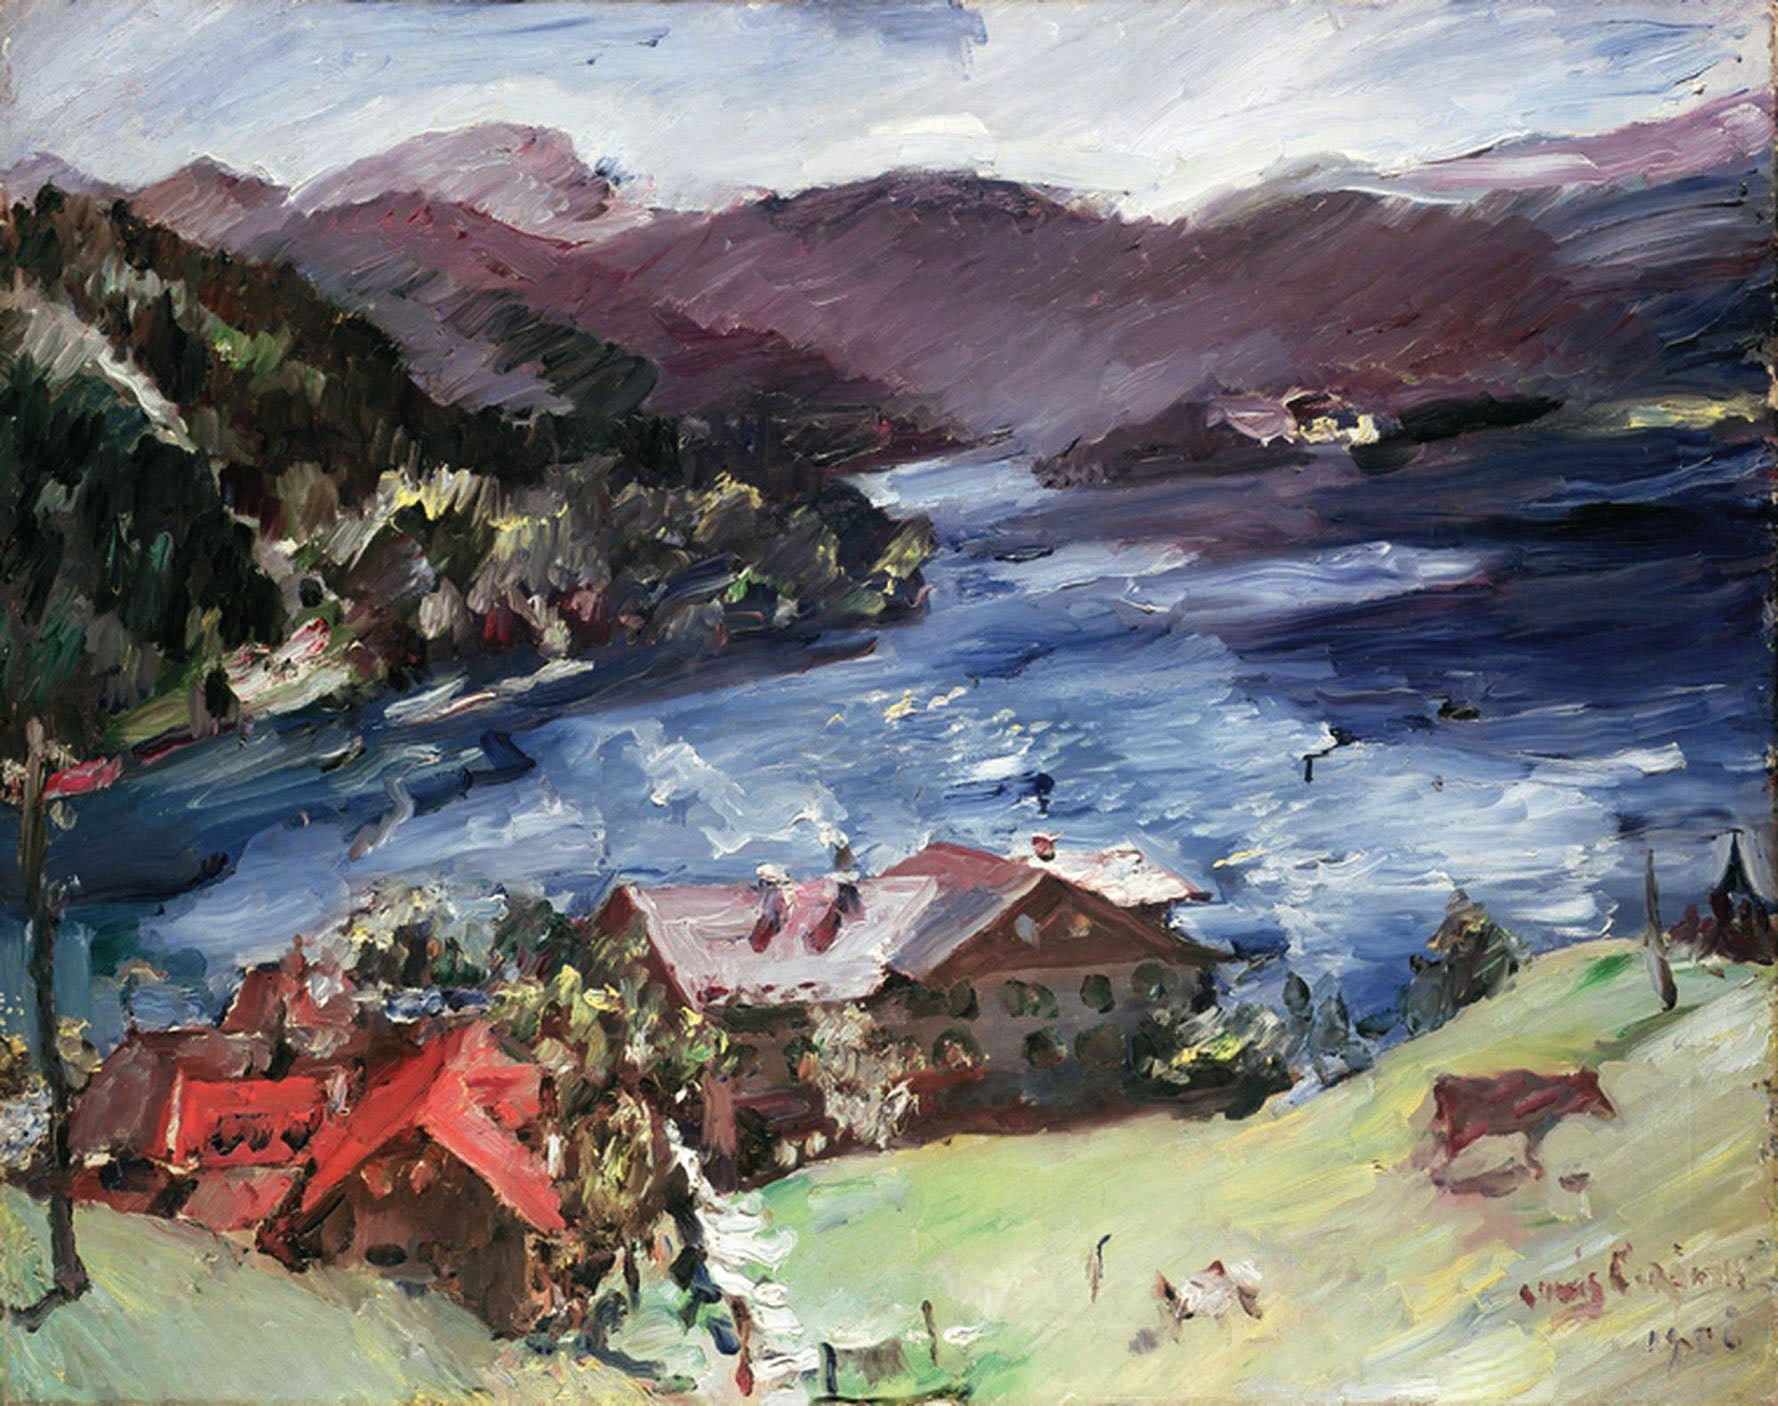 How the German painter Lovis Corinth found his many moods reflected in a Bavarian lake